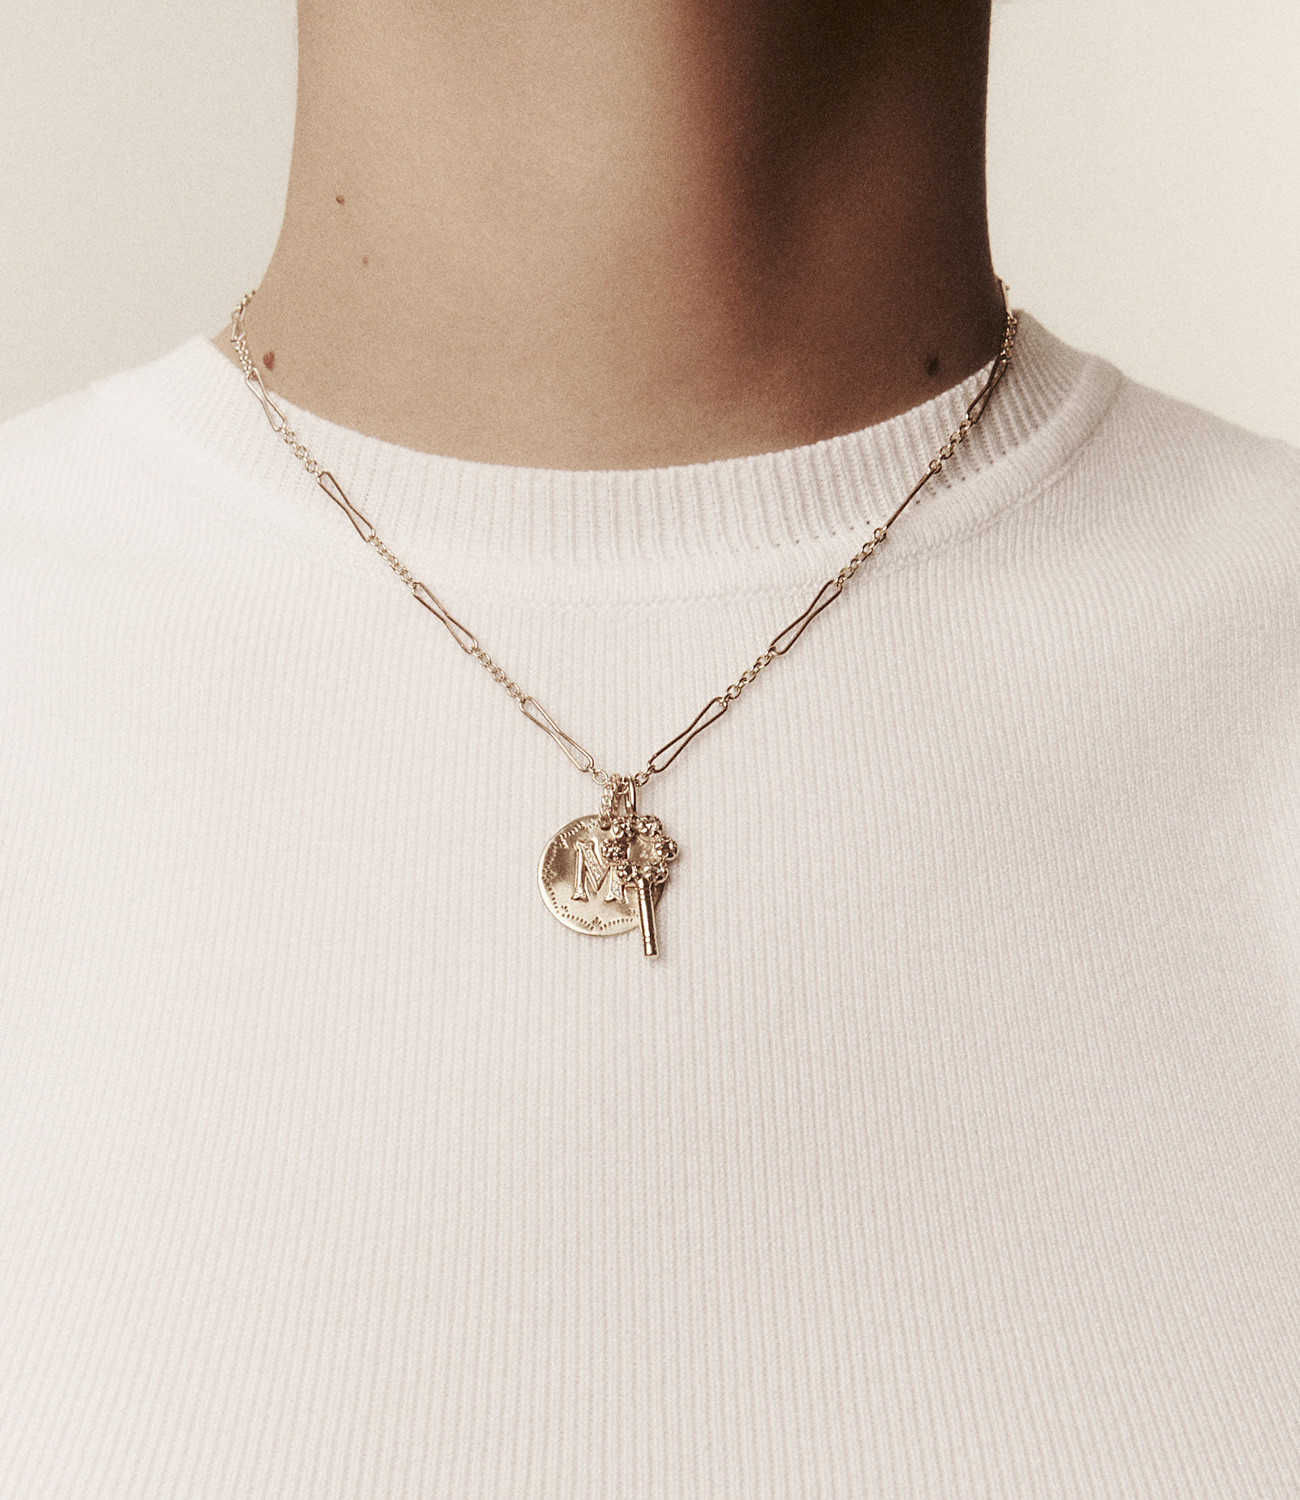 PETRA N°3 Collier Pascale Monvoisin Jewelry